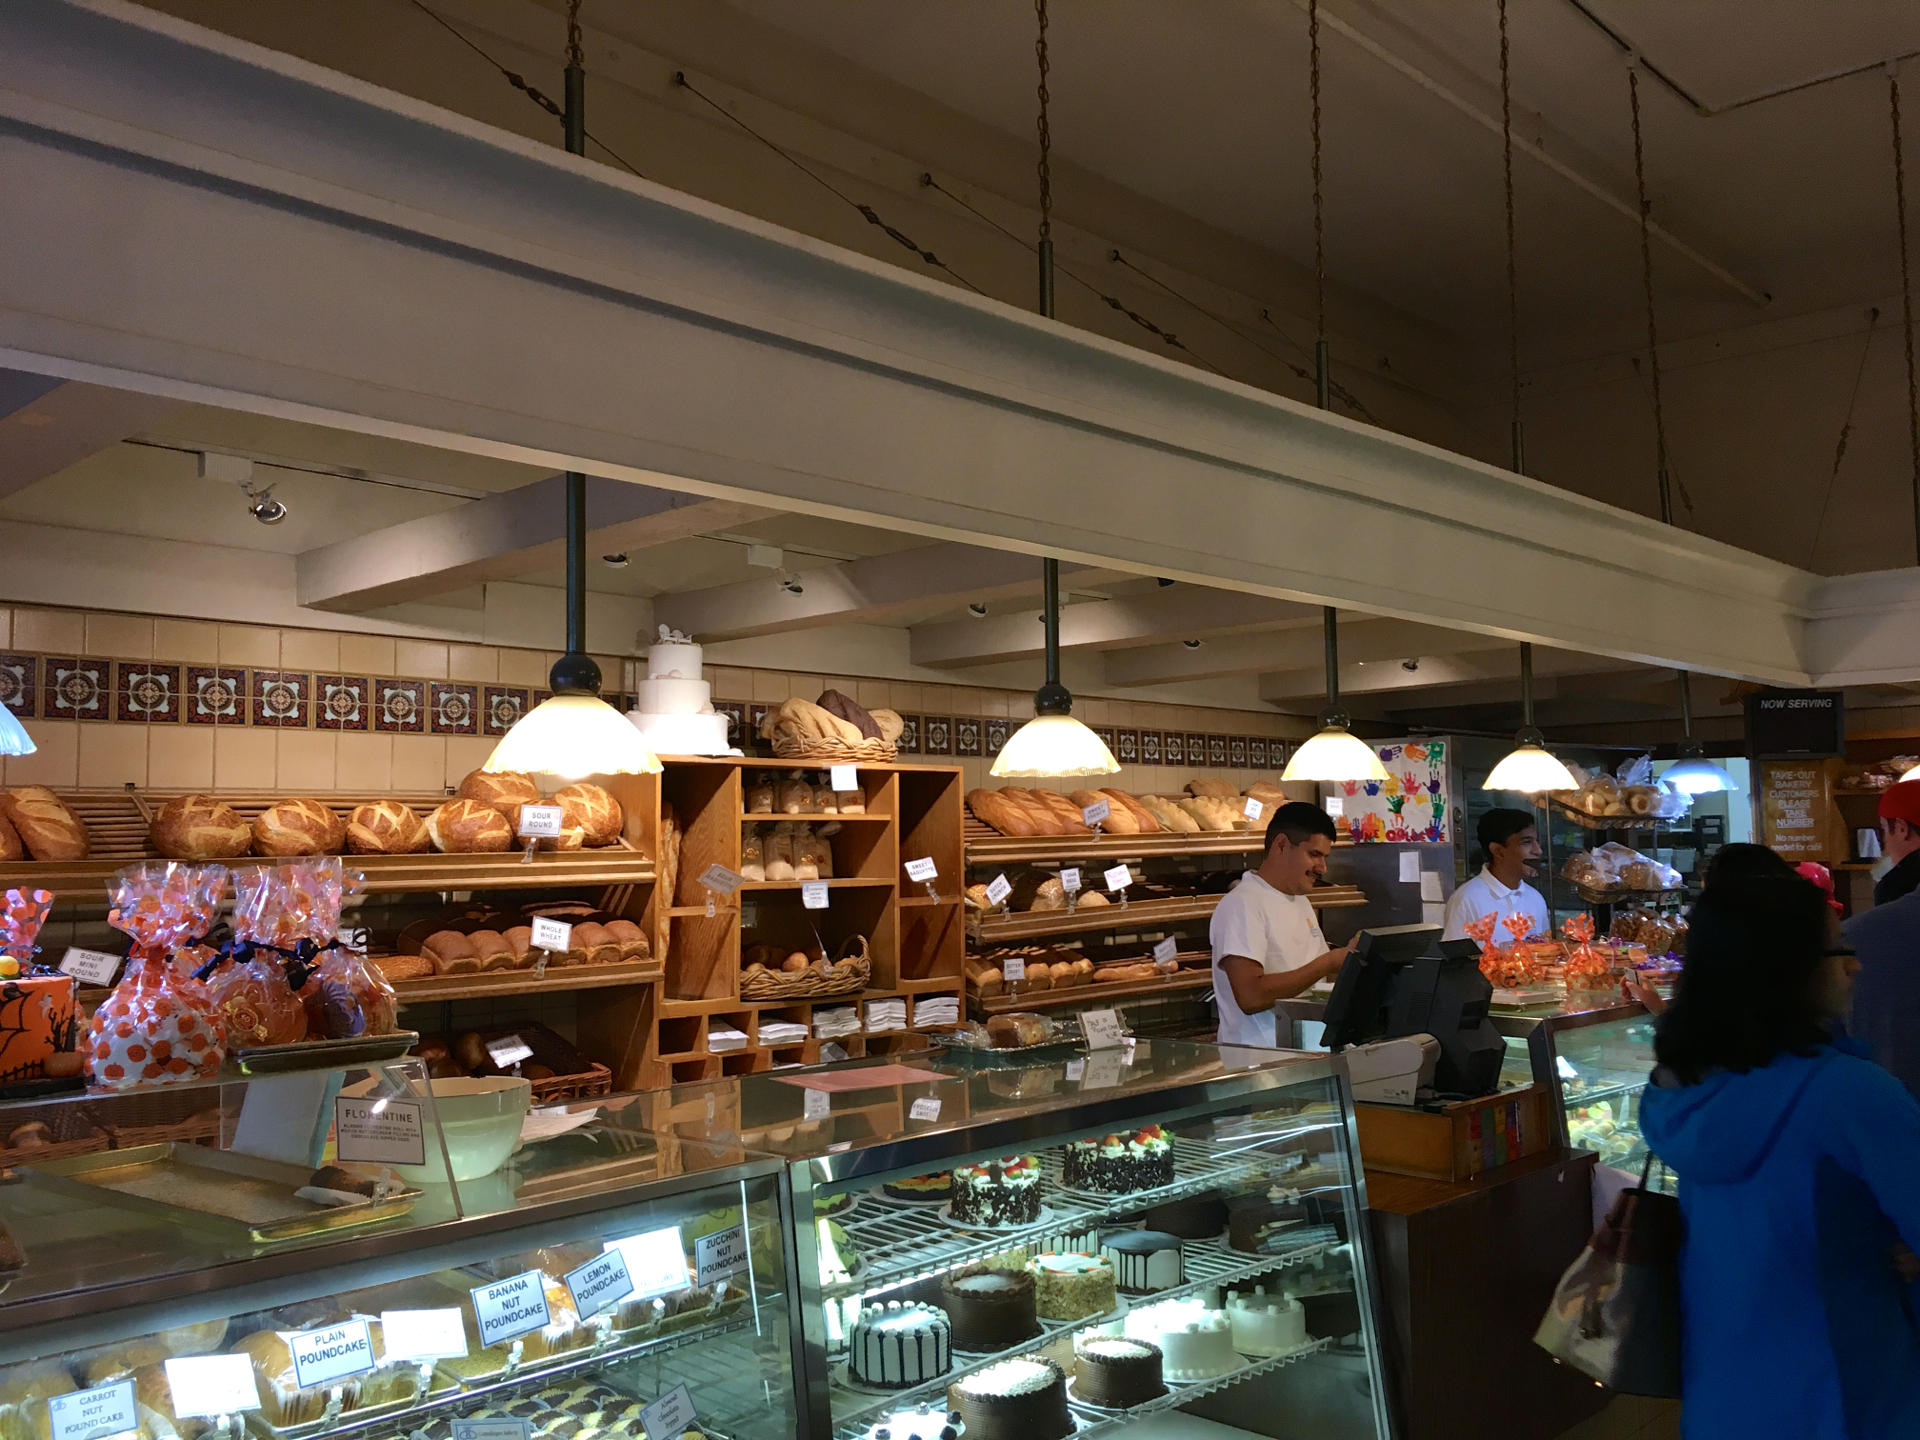 Inside Copenhagen Bakery in Burlingame.